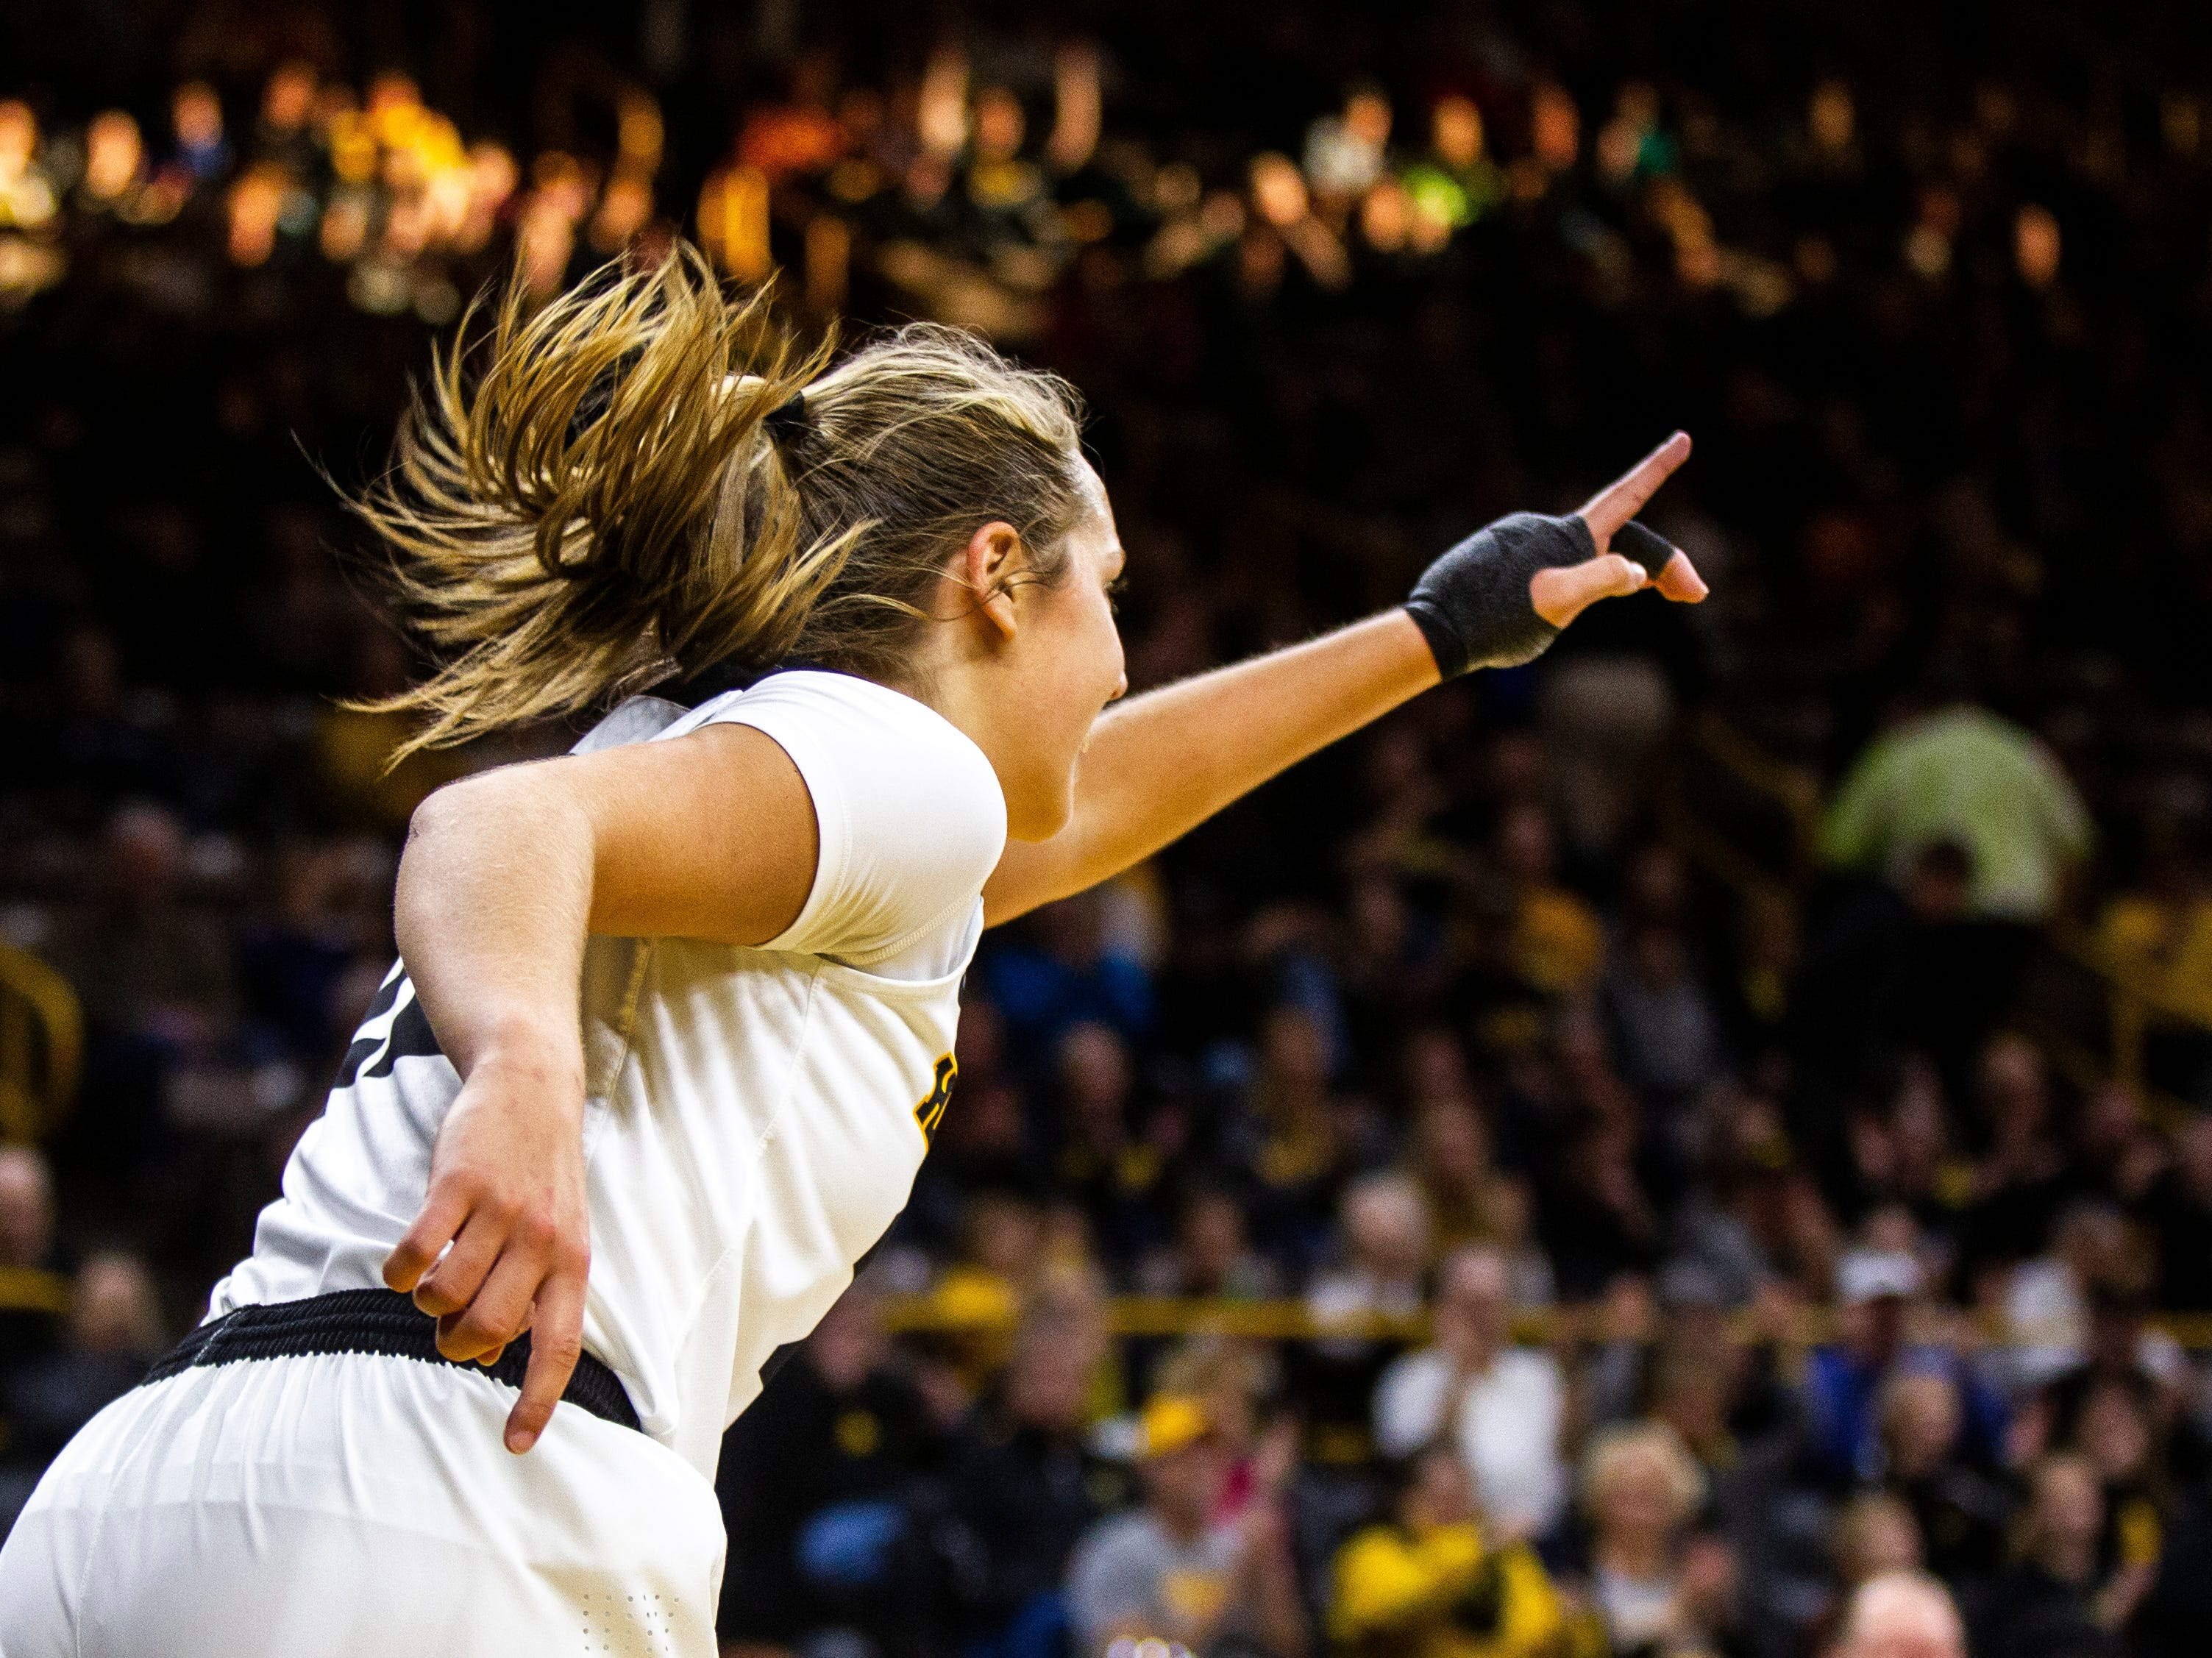 Iowa guard Kathleen Doyle (22) reacts after making a basket during a NCAA women's basketball game on Saturday, Dec. 8, 2018, at Carver-Hawkeye Arena in Iowa City.